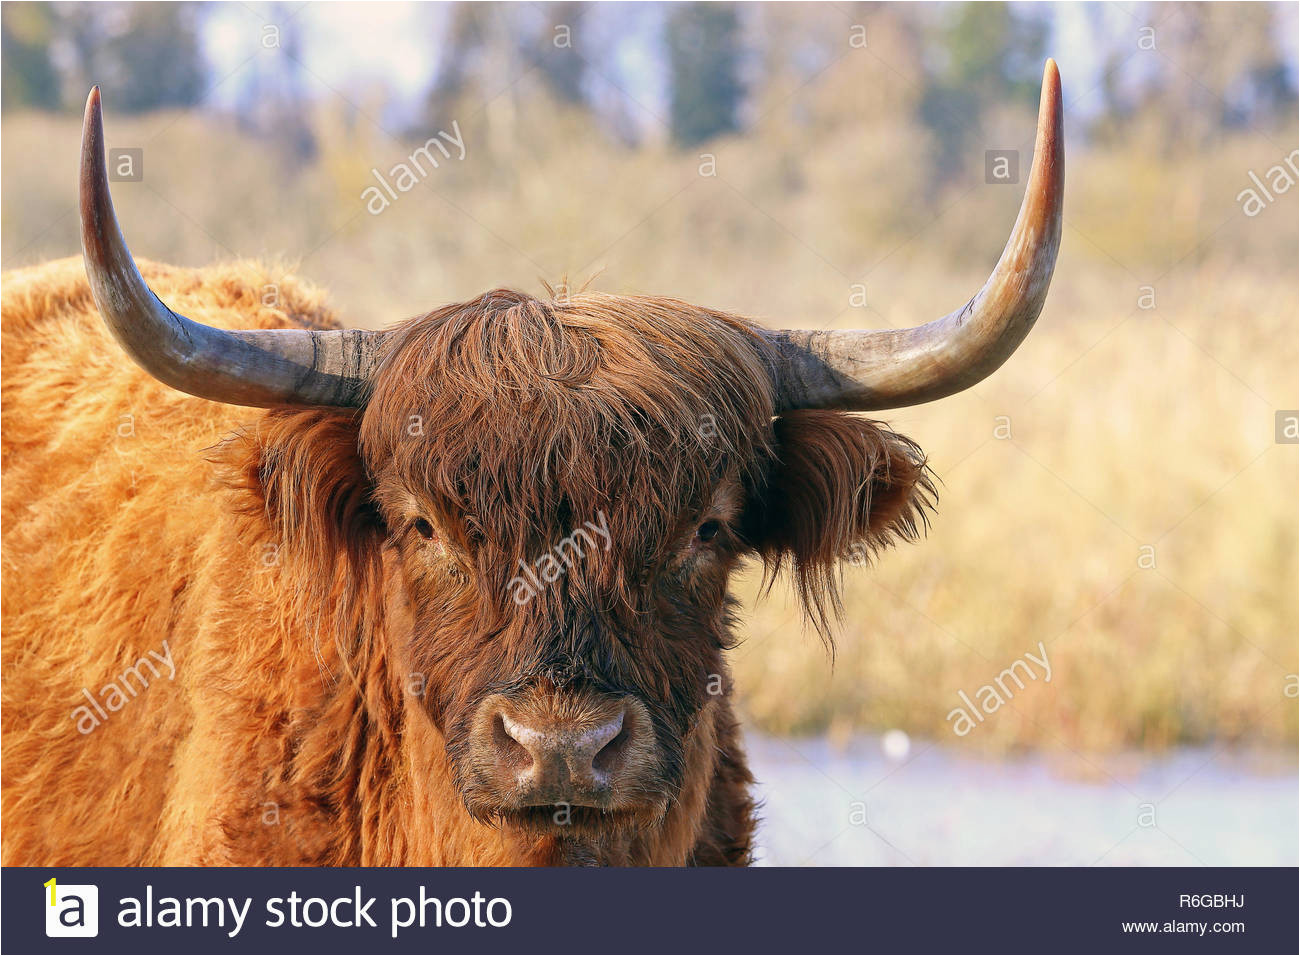 close up scottish highland cattle in winter R6GBHJ